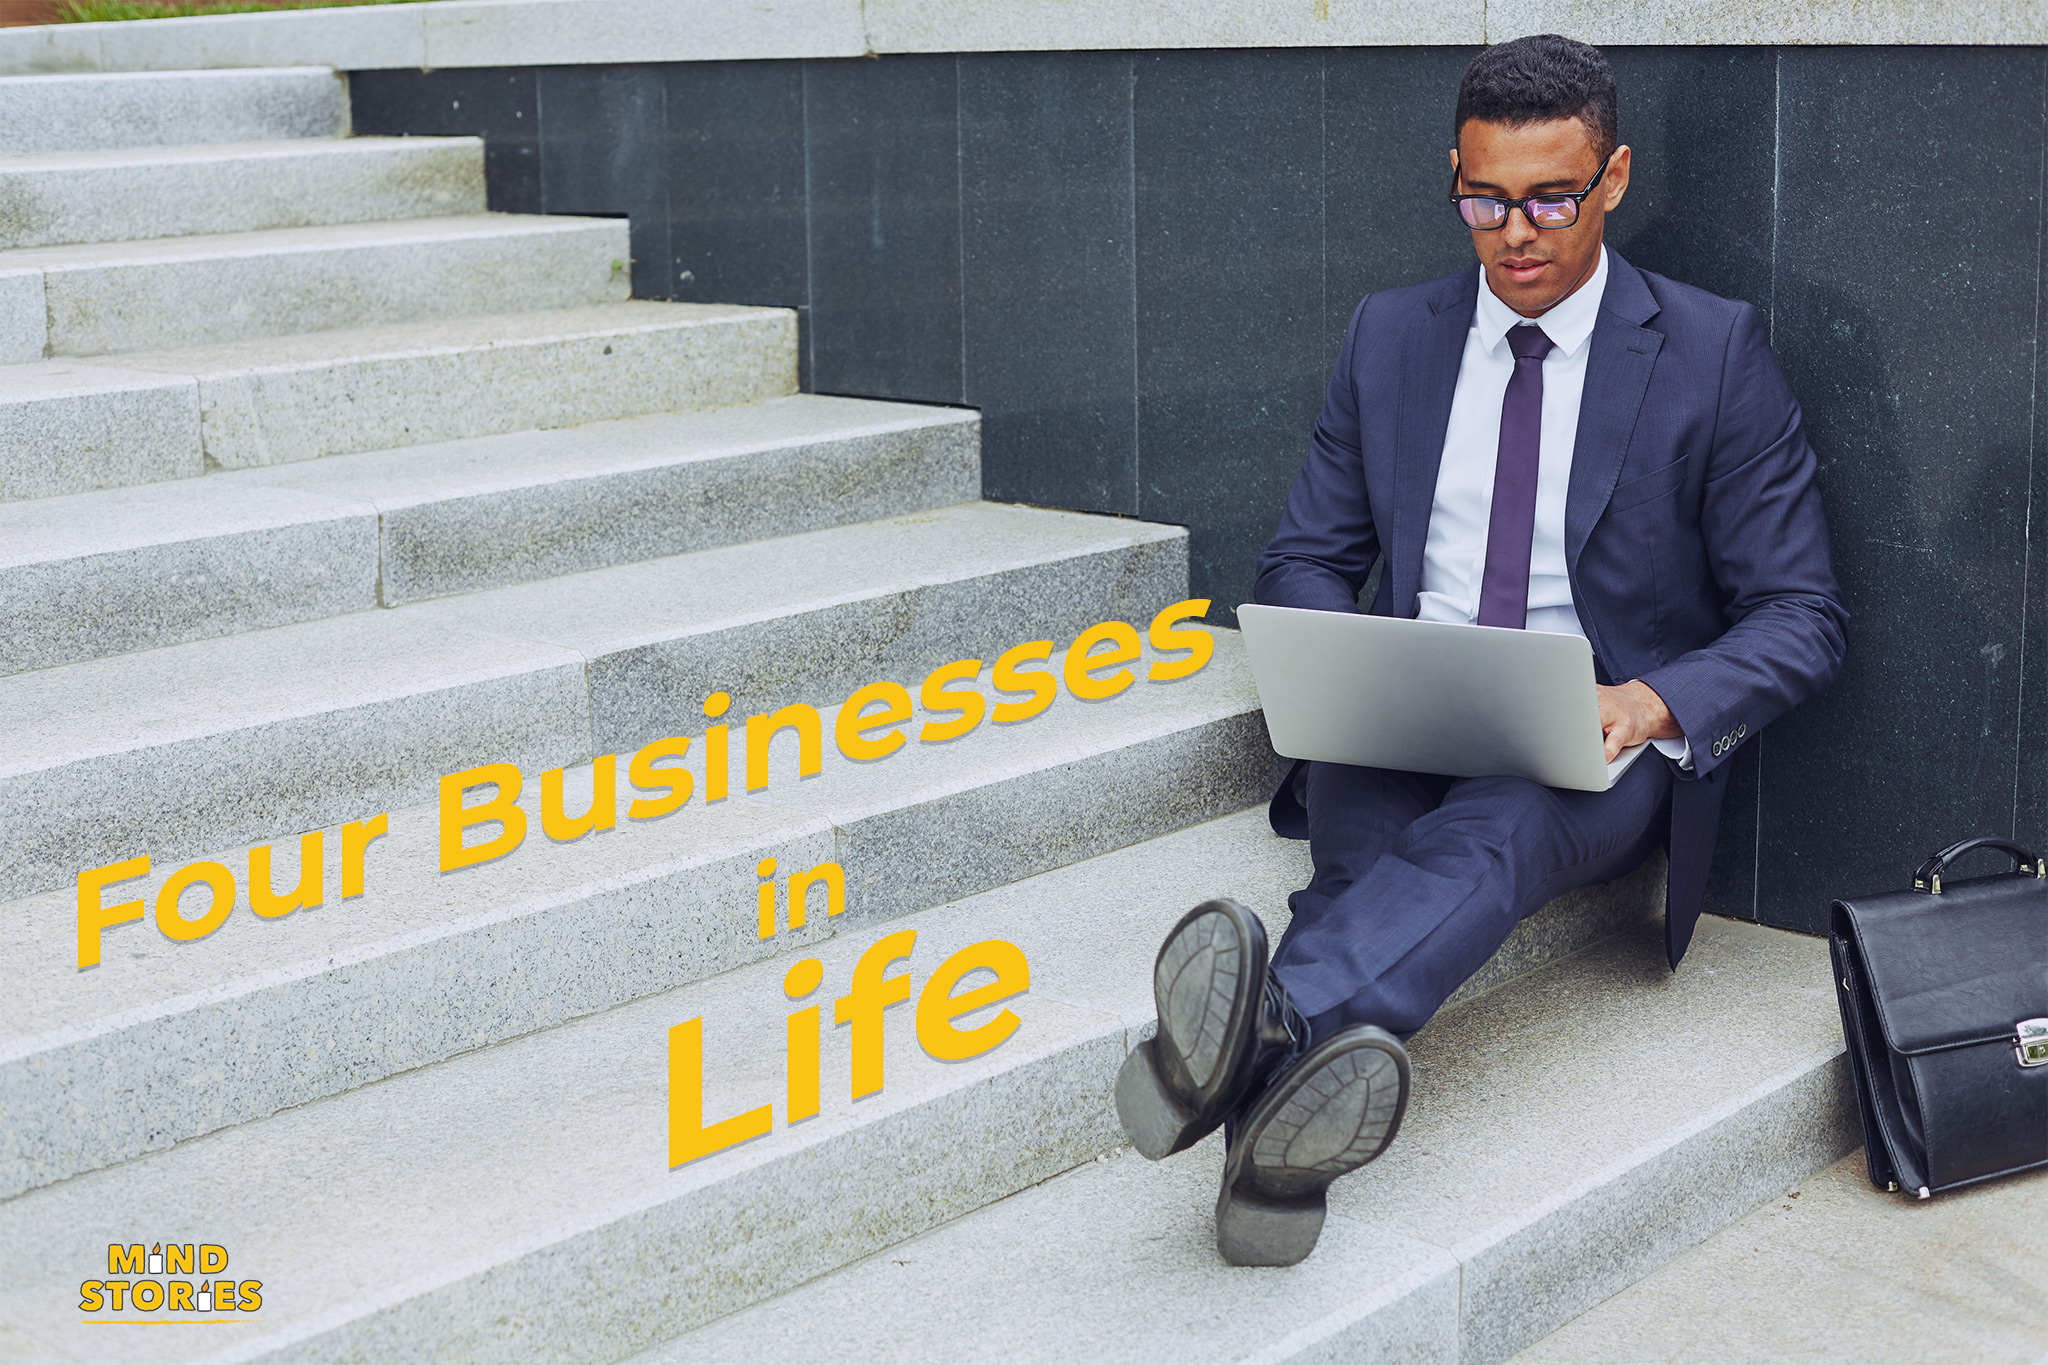 Four Businesses in life